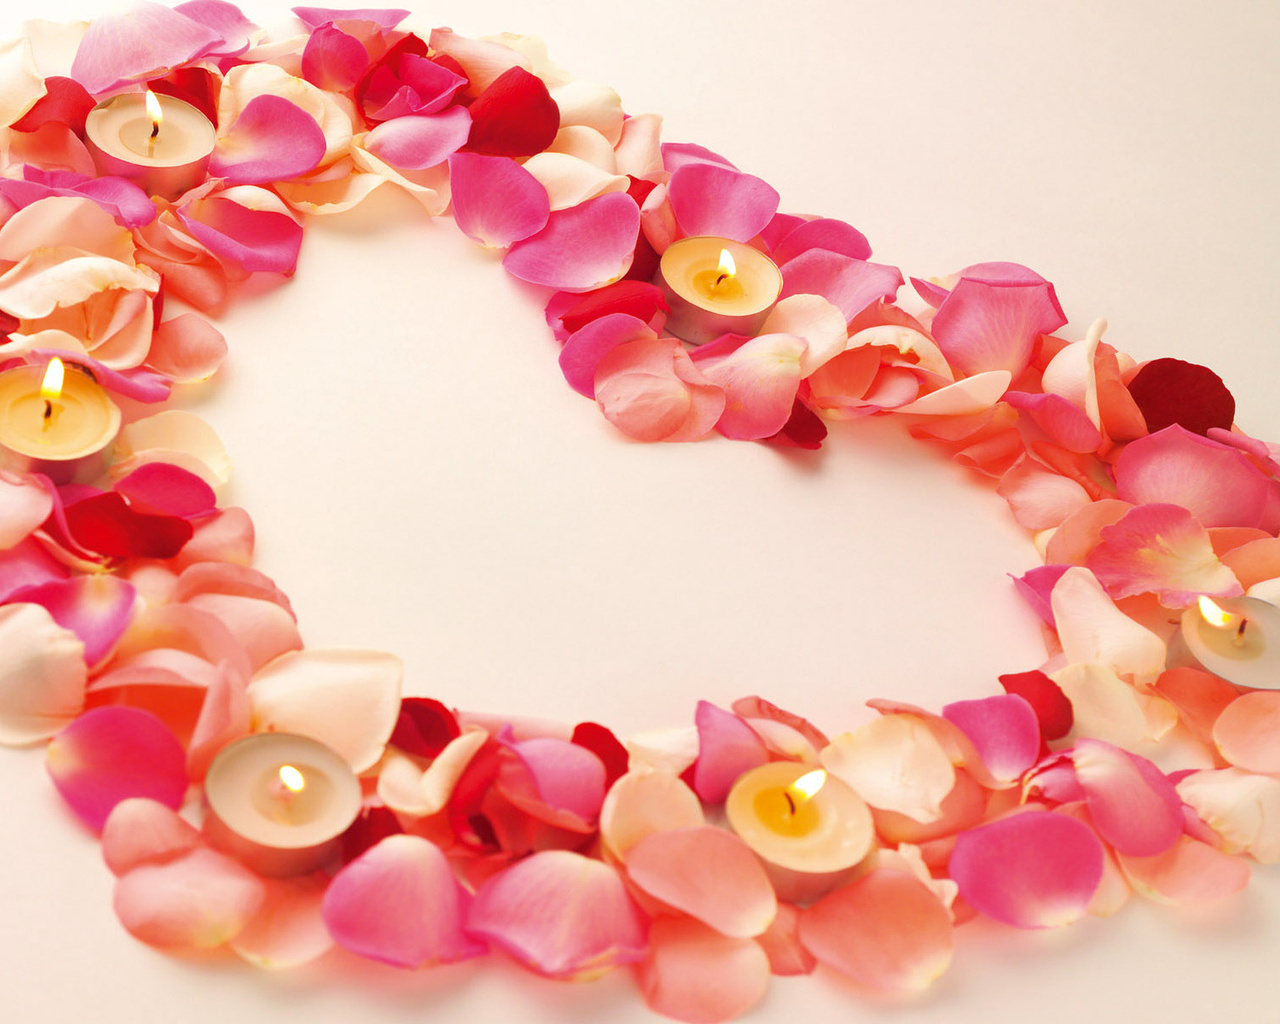 Sukin Blog Hd Wallpapers Of Valentines Day 2011